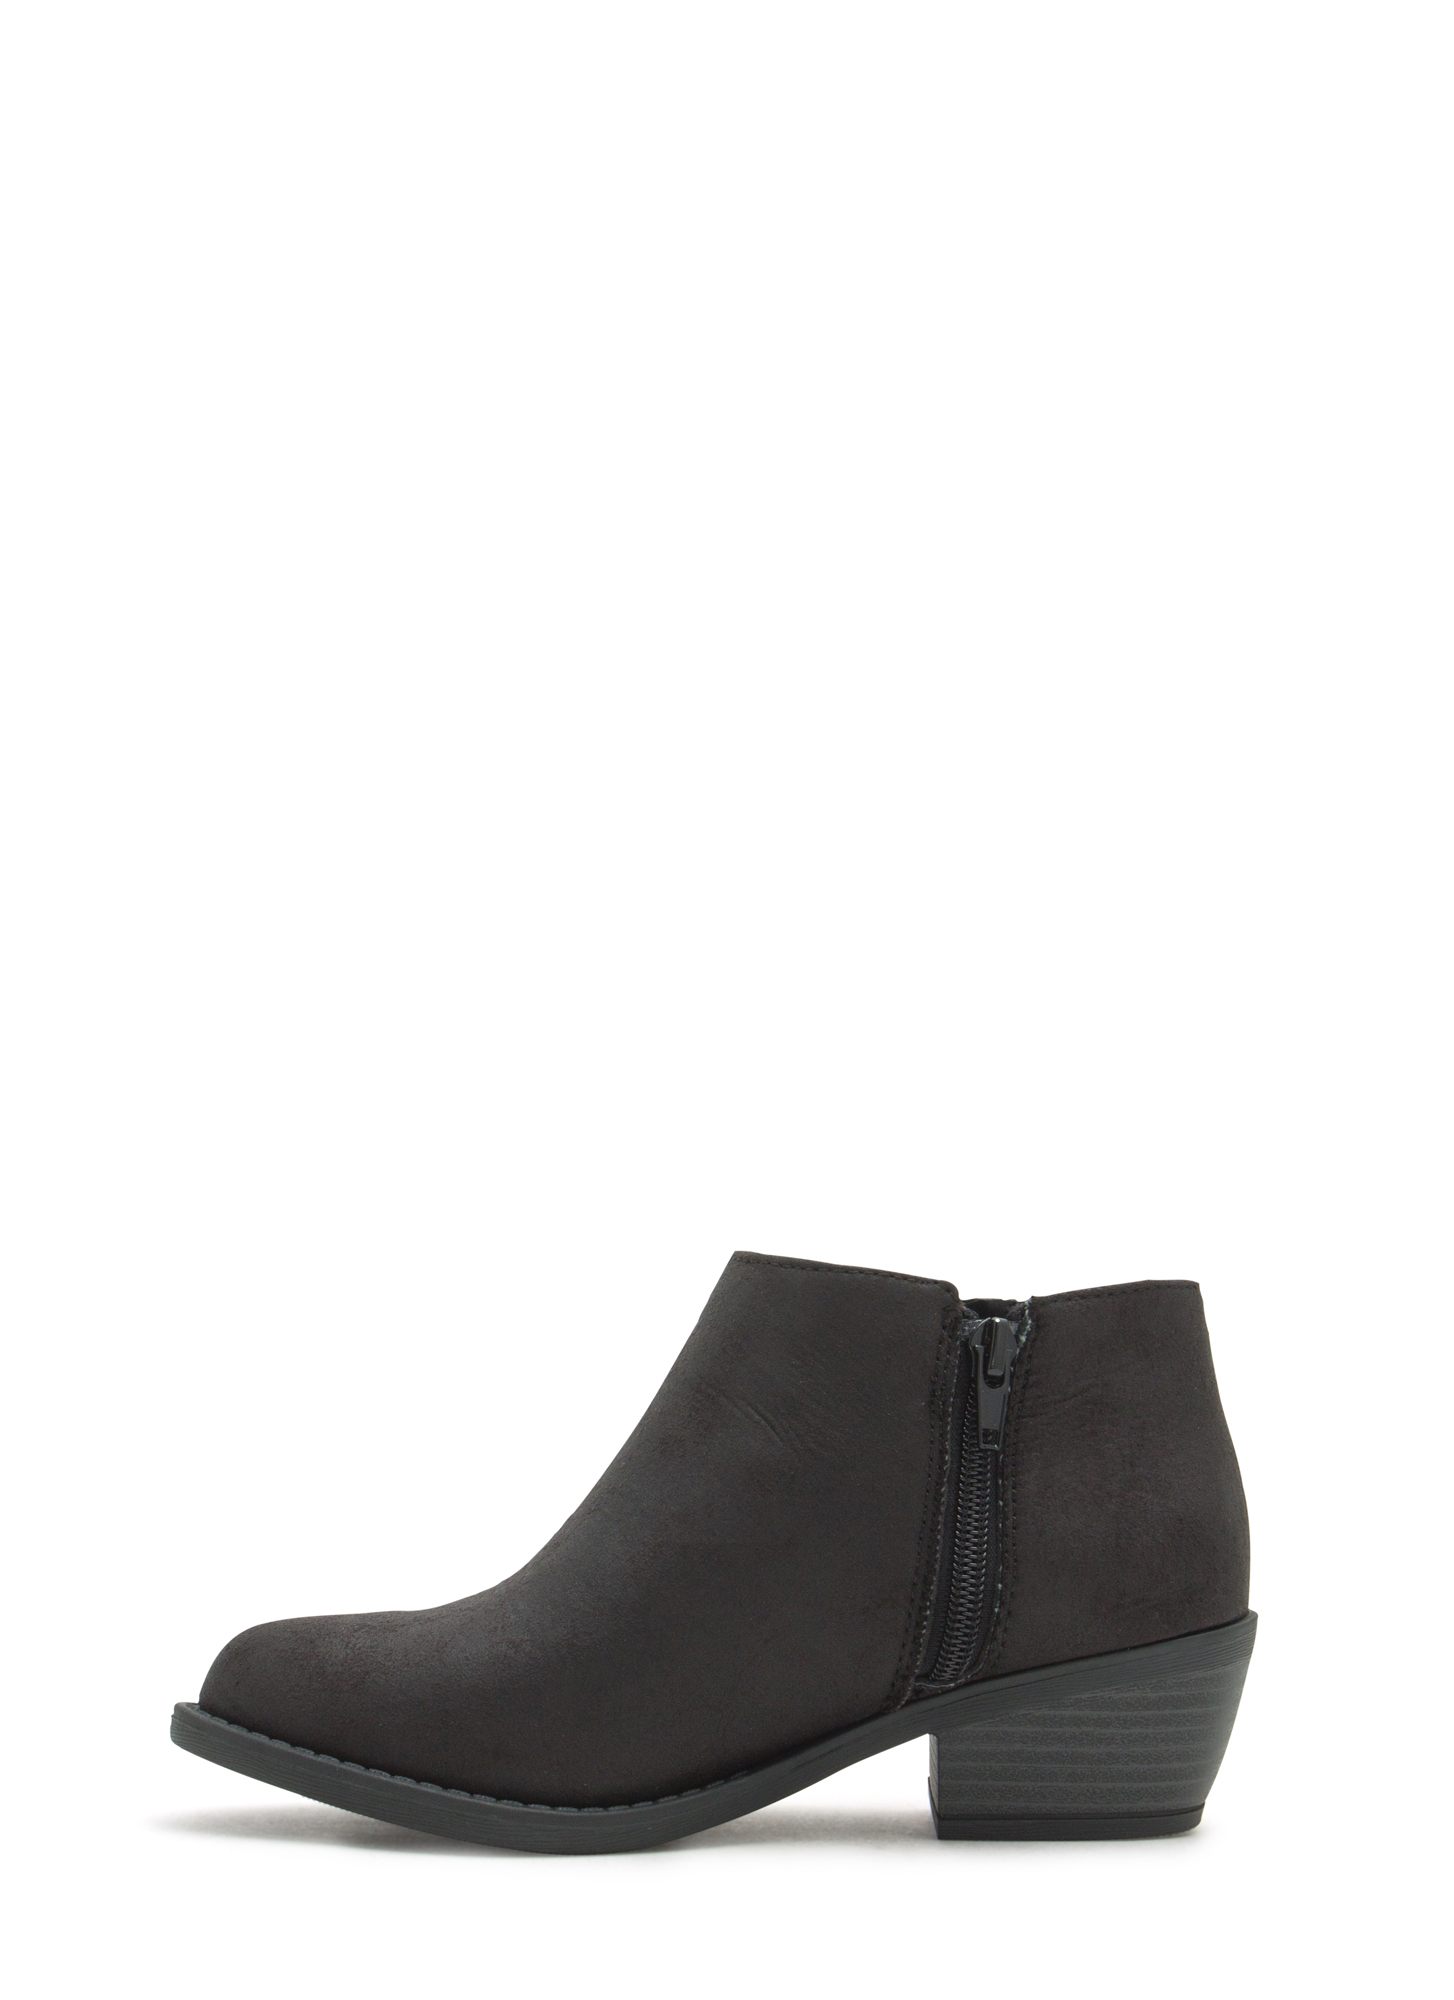 Perfect Basic Faux Leather Booties BLACK